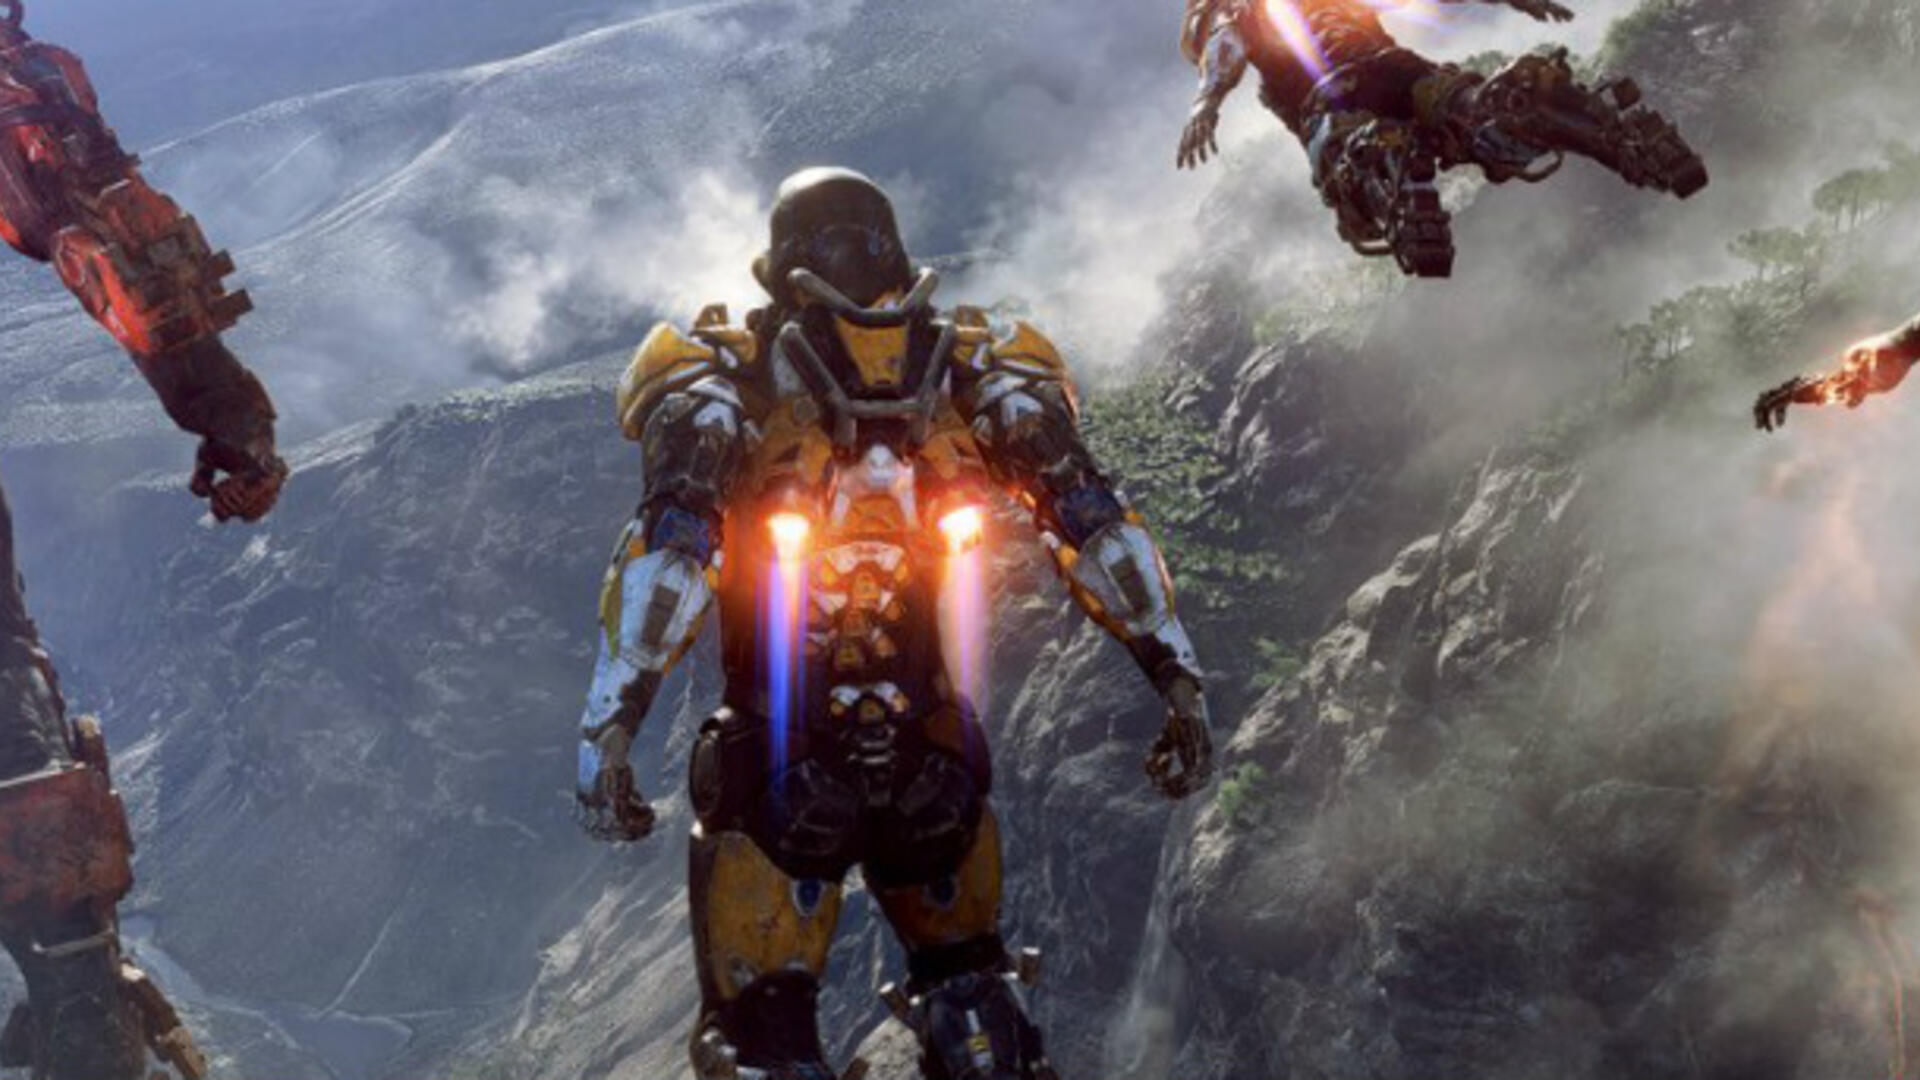 Anthem Producer: Mass Effect: Andromeda Never Had a Good Foundation to Support Long-Term Plans